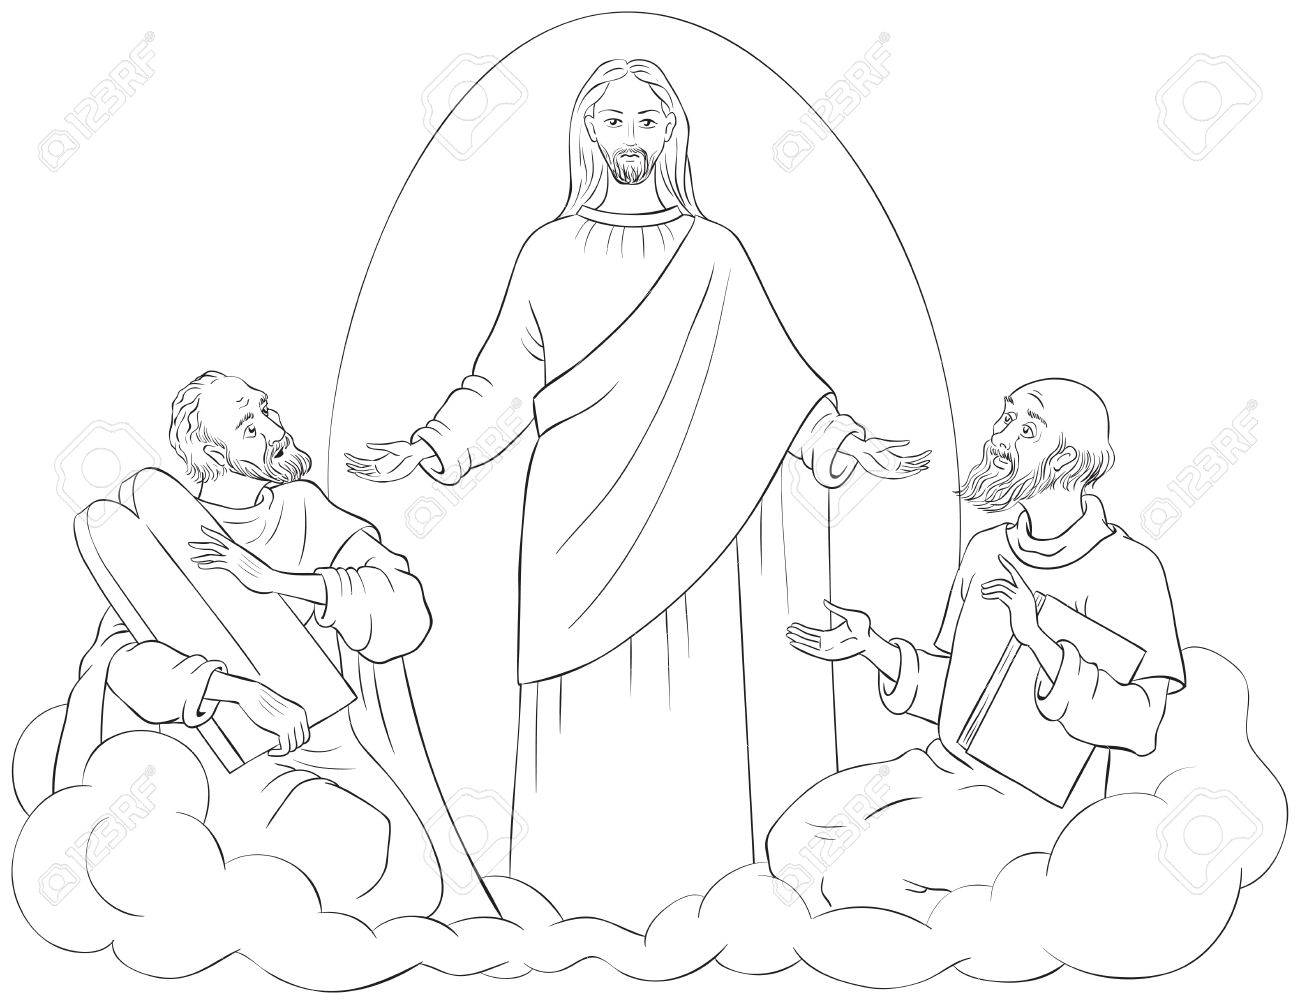 transfiguration of jesus christ with elijah and moses coloring